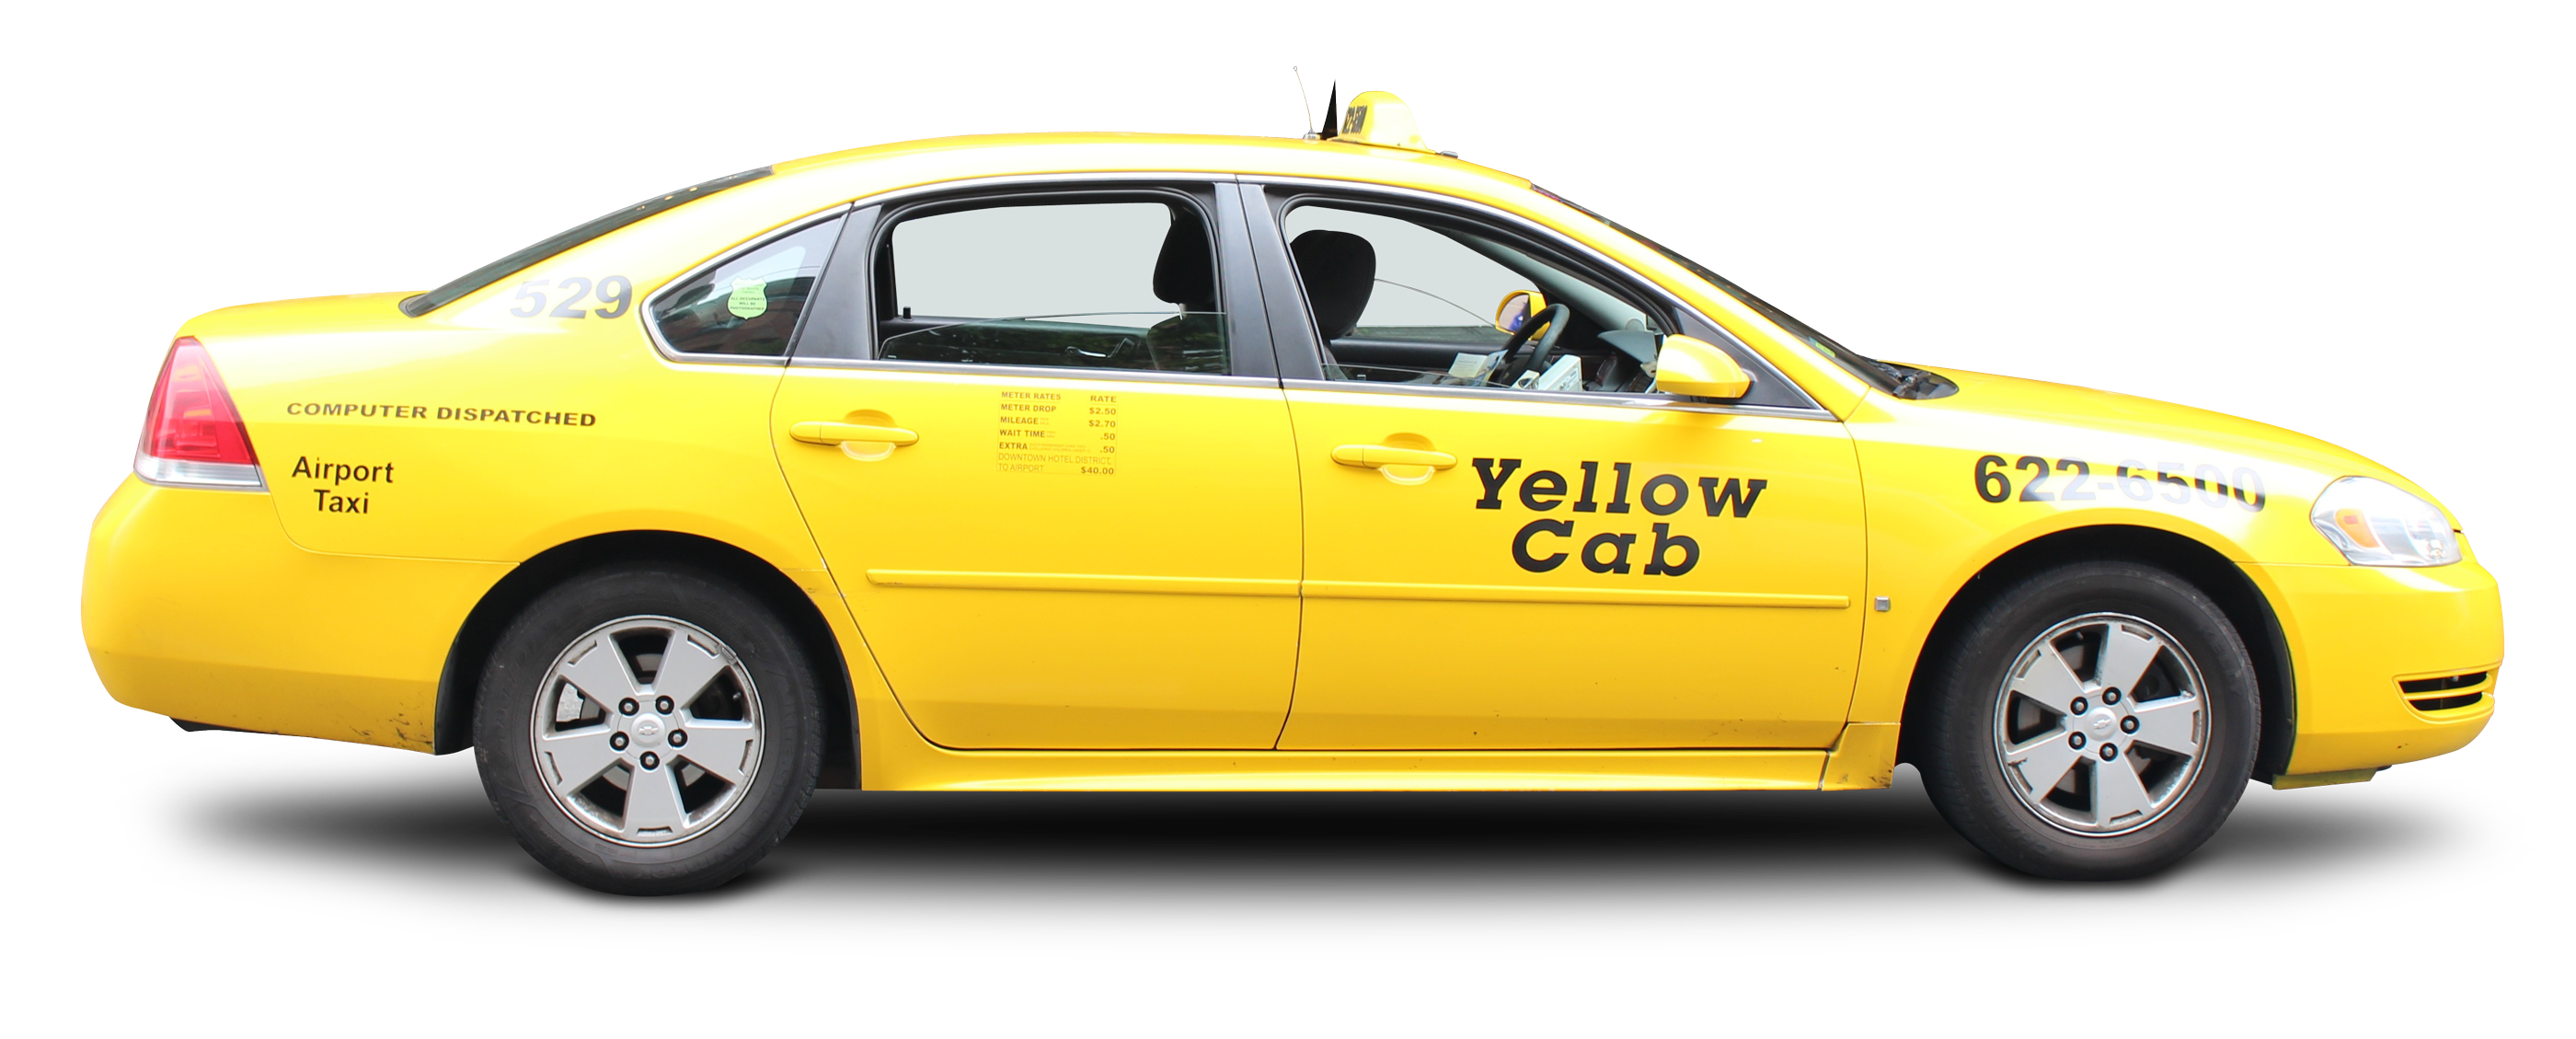 Taxi PNG Image.